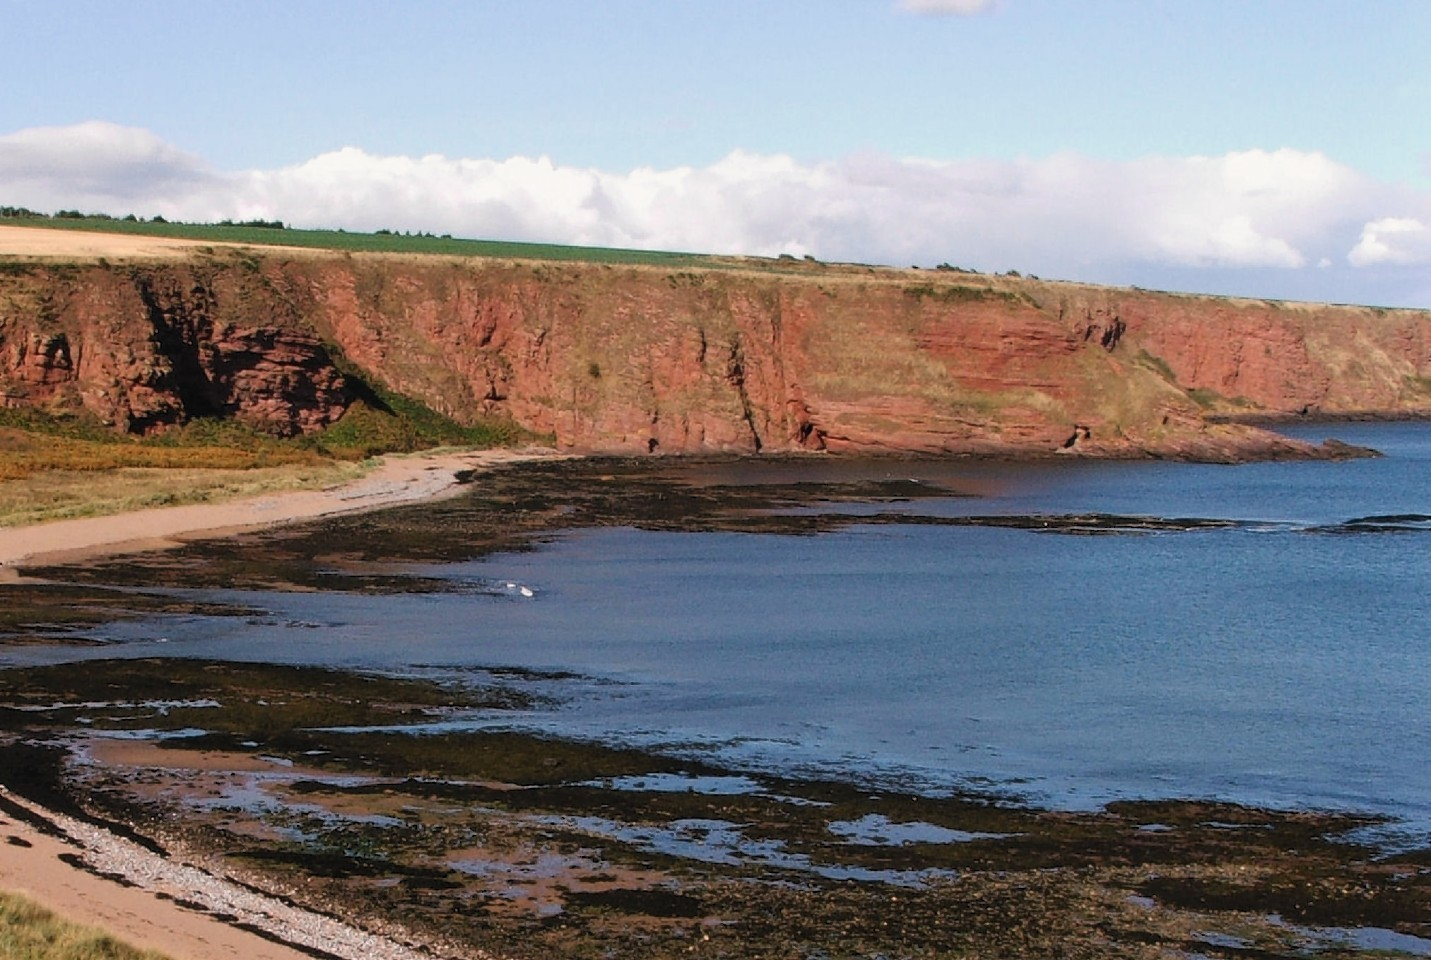 The skull was found floating seven miles off the coast of Arbroath.